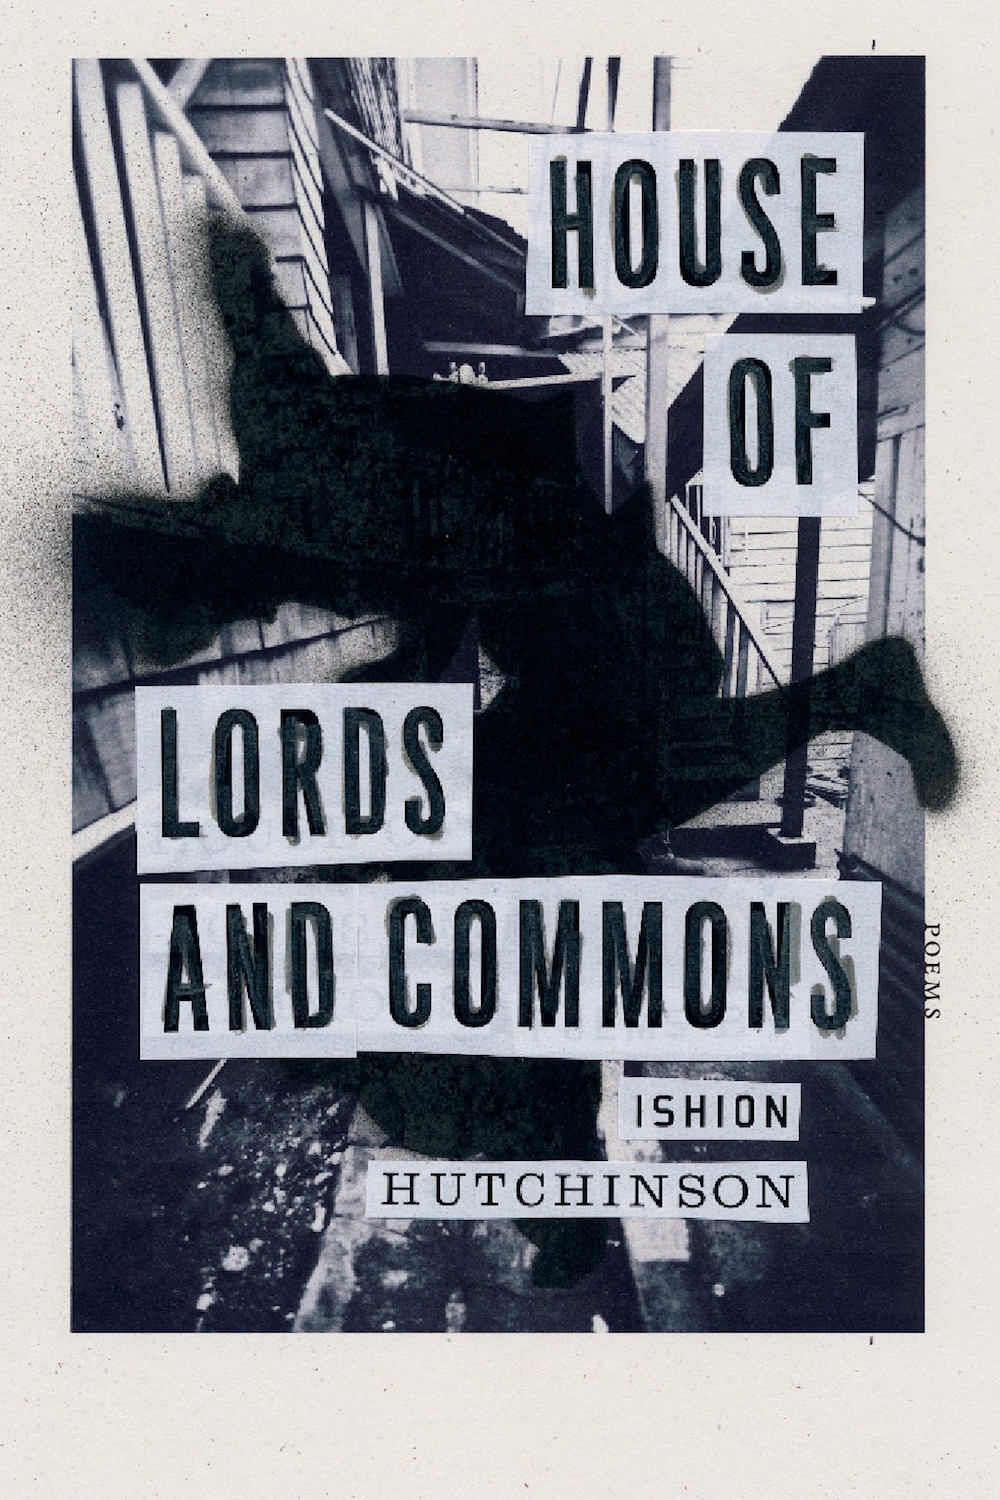 """Another born Jamaican, the poet  Ishion Hutchinson , lets his imagination run free in   House of Lords and Commons  . Exploring the complicated beauty of loving countries with difficult landscapes, he connects the 17th century English Civil War to mythic sea wanderers. He had me with his epigraph: """"Praise the barbarians invading your sleep/ Their exploding horses hurting the snow."""""""